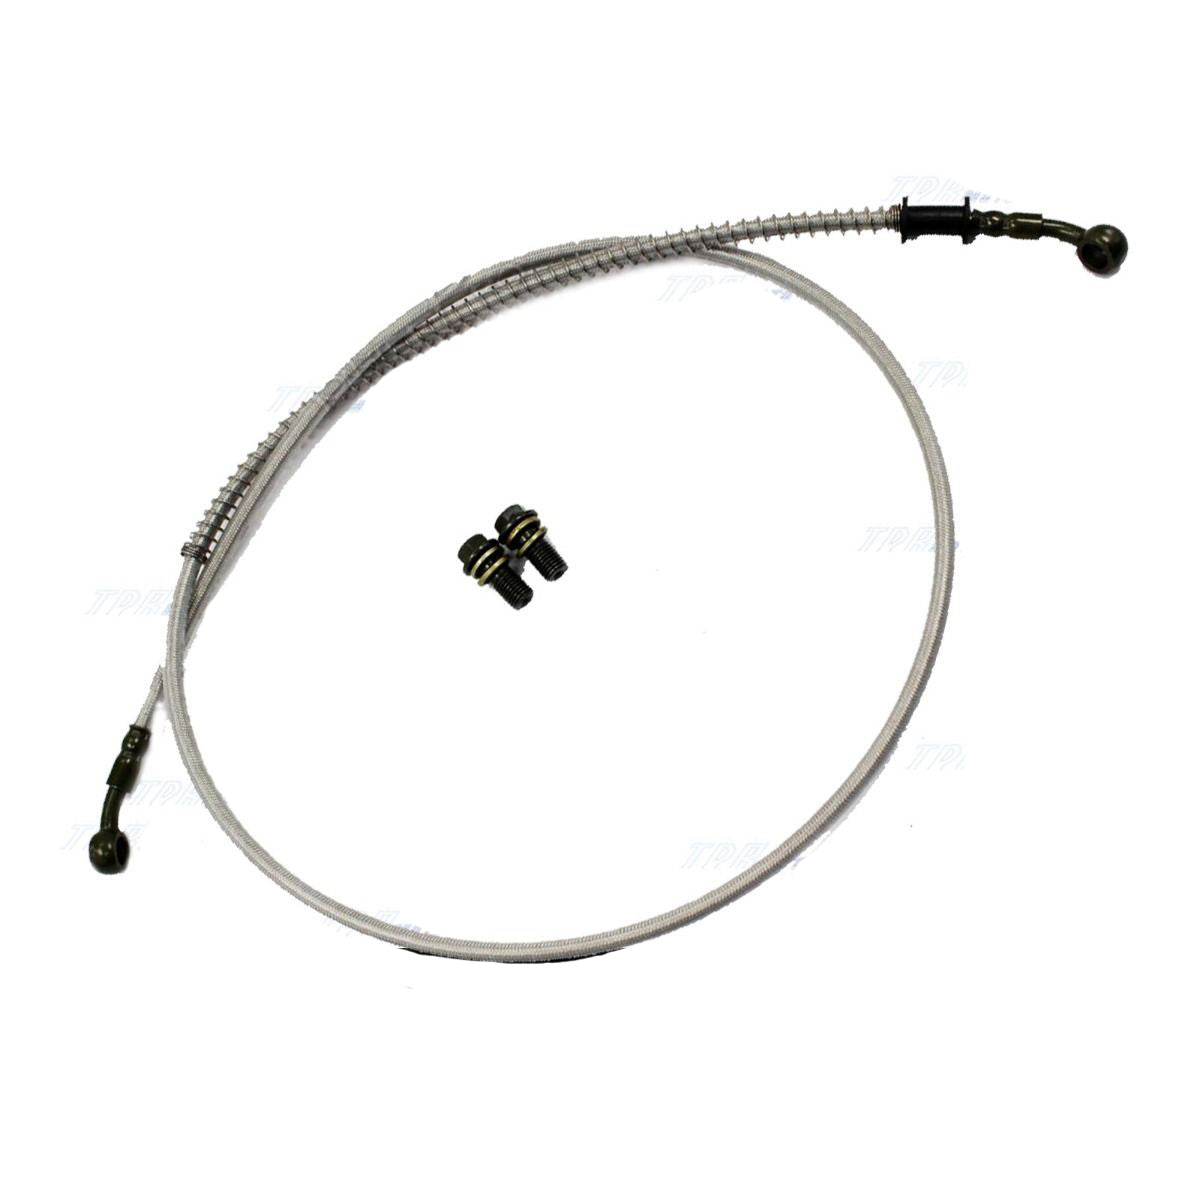 1300mm Motorcycle/Quad Bike/Bugy/GoKart Hydraulic Brake Line Hose Cable with M10 Banjo